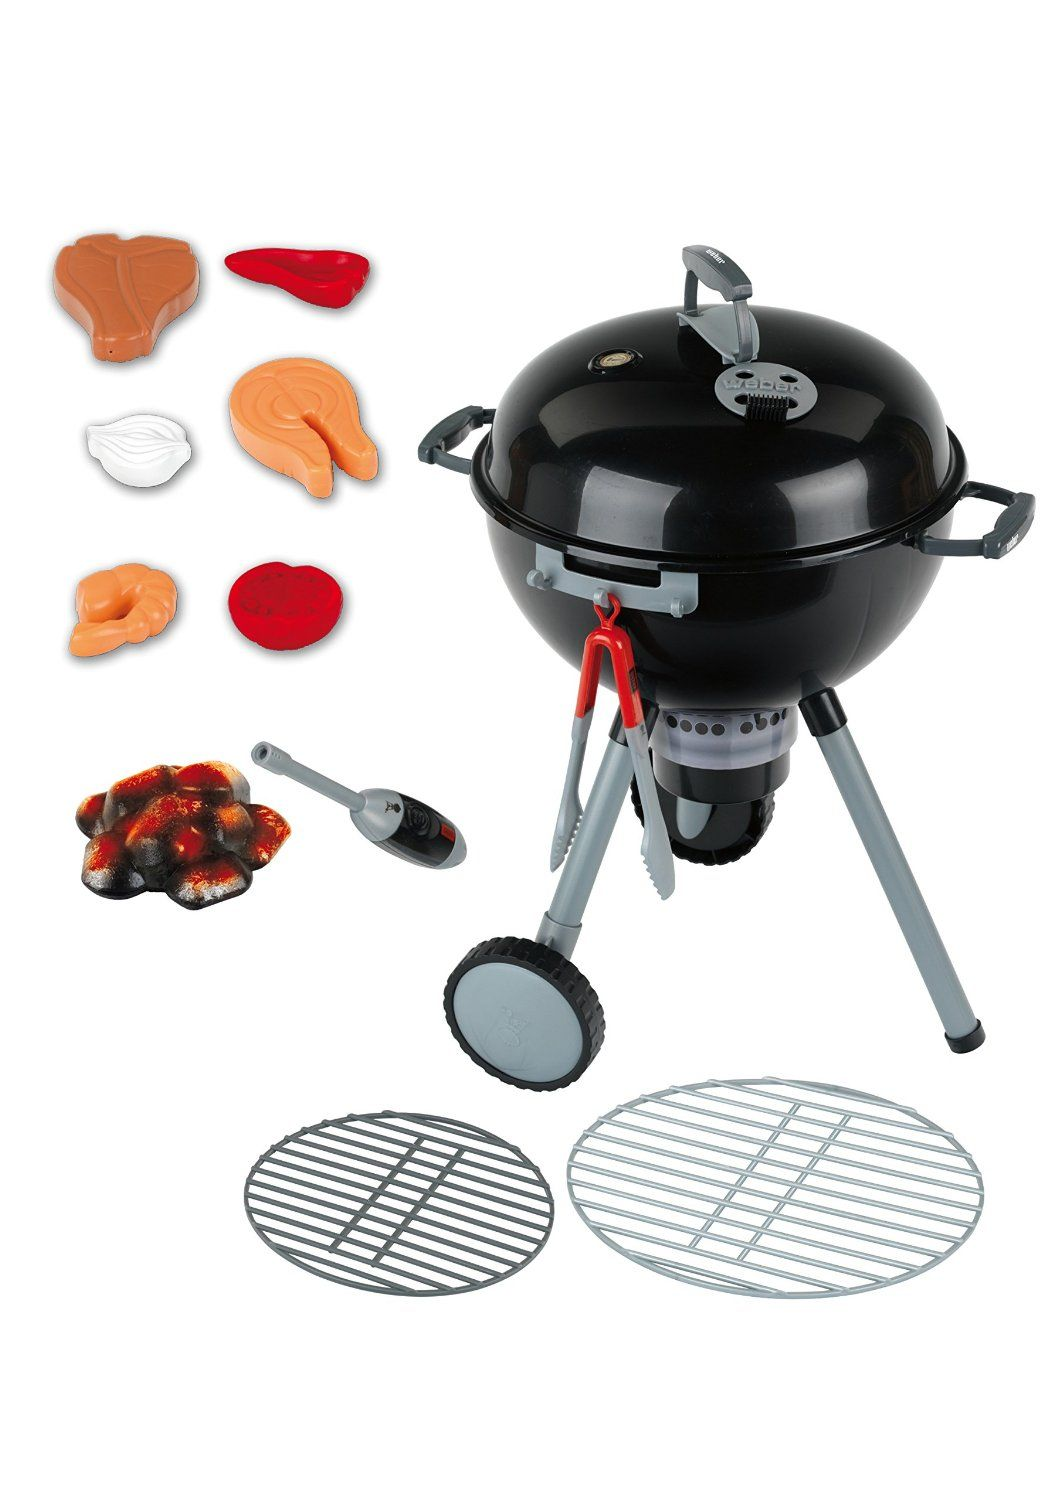 Kids Play Charcoal Weber Grill | Weber grill and Plays